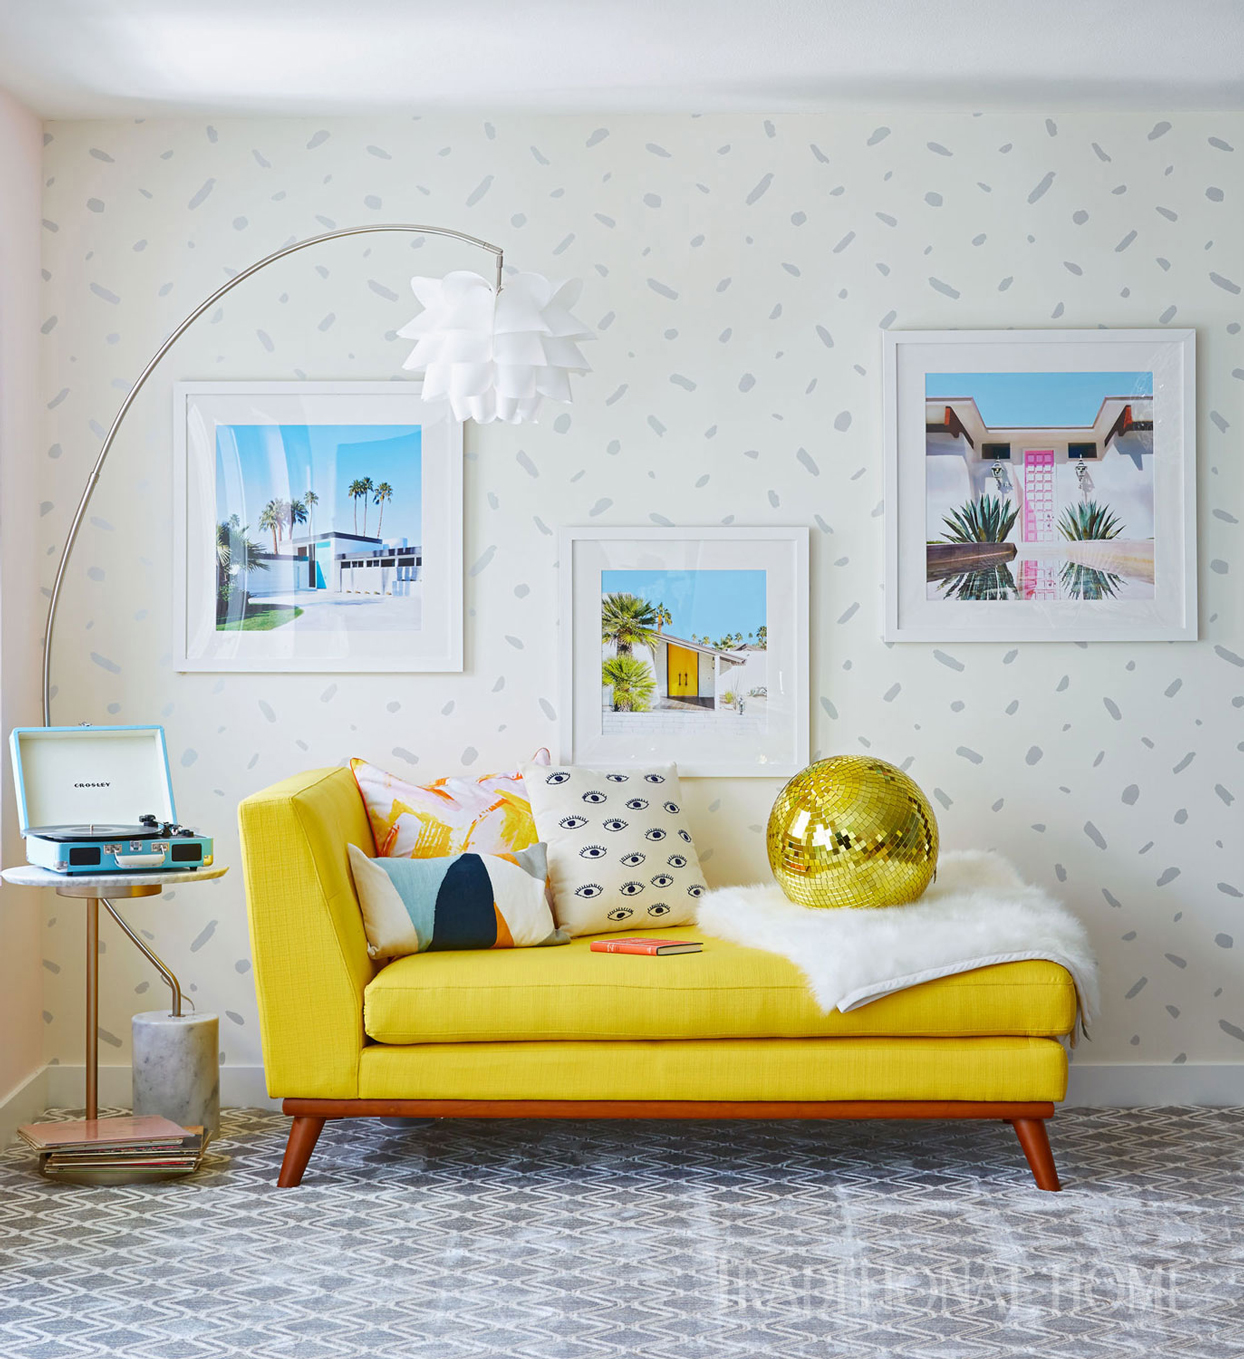 family room with yellow couch